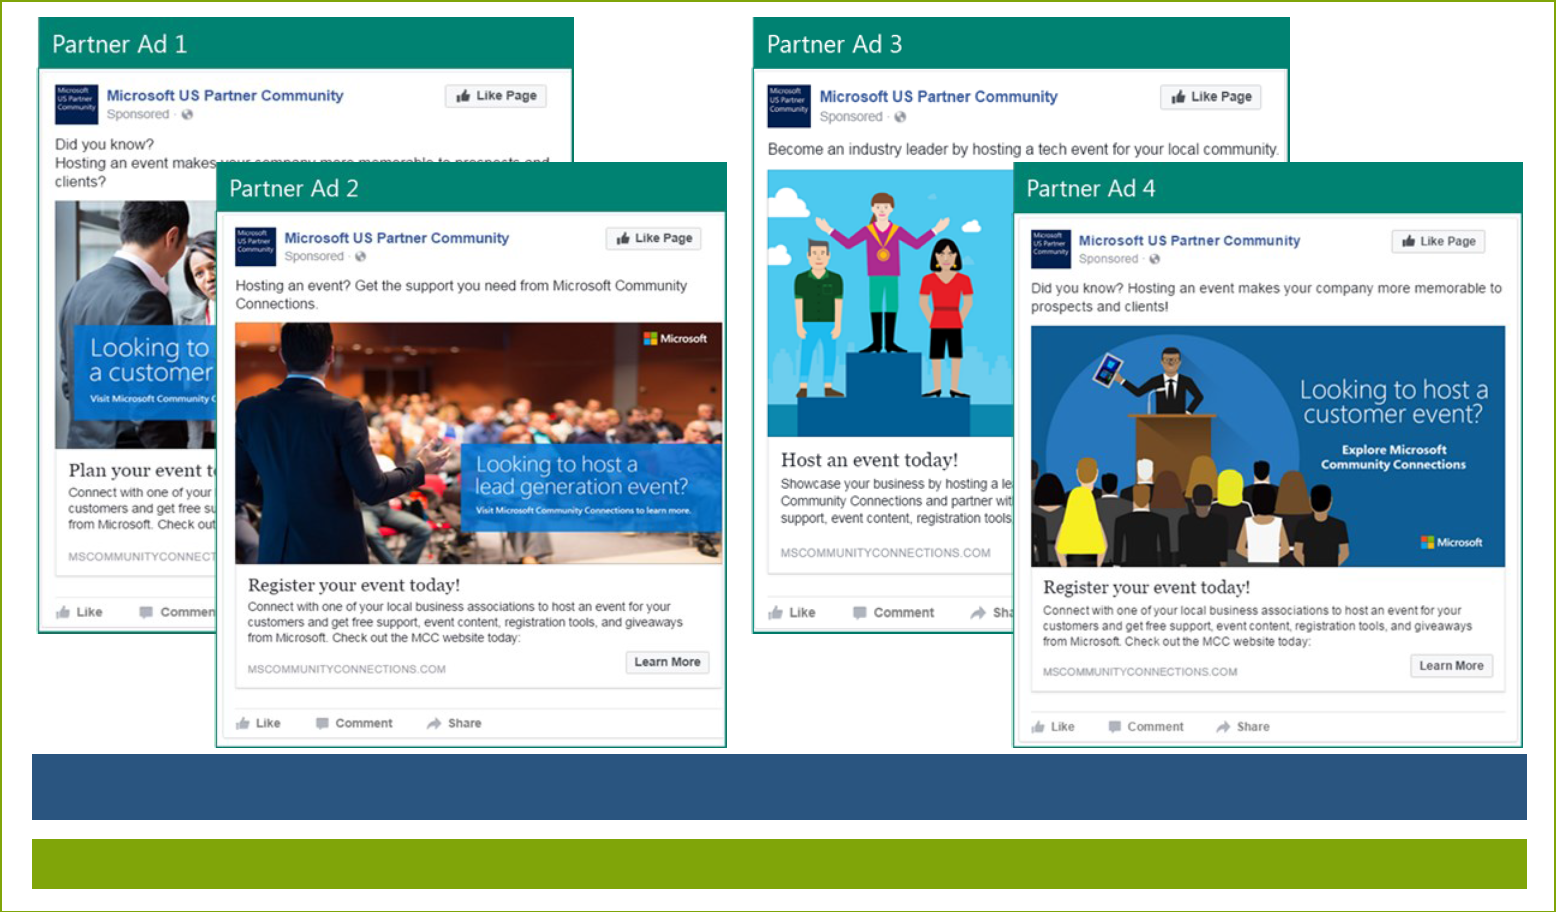 Microsoft Facebook Campaign Exceeds Benchmarks